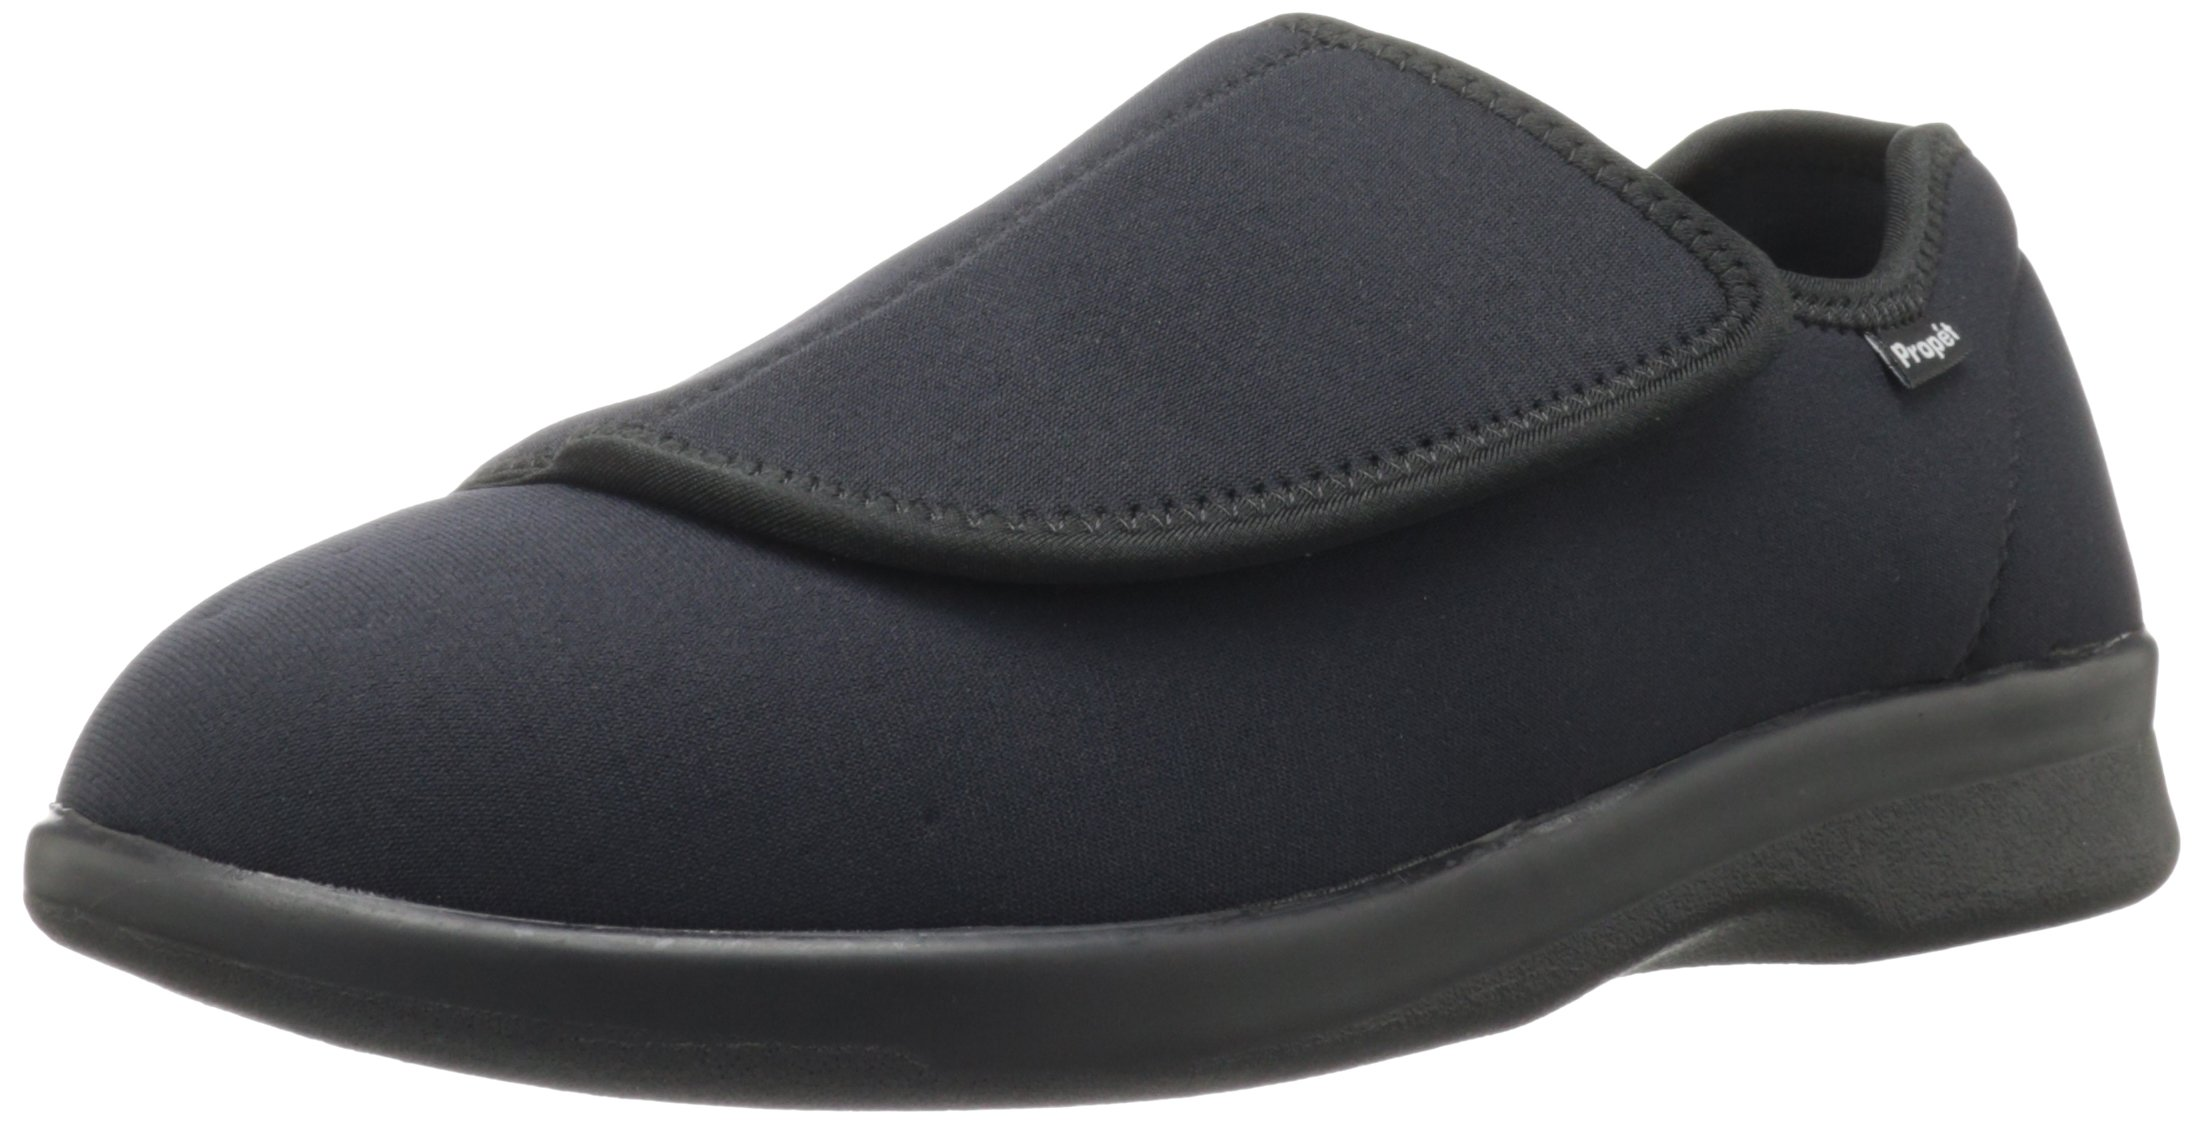 Propet Men's Cush 'n Foot Slip-On